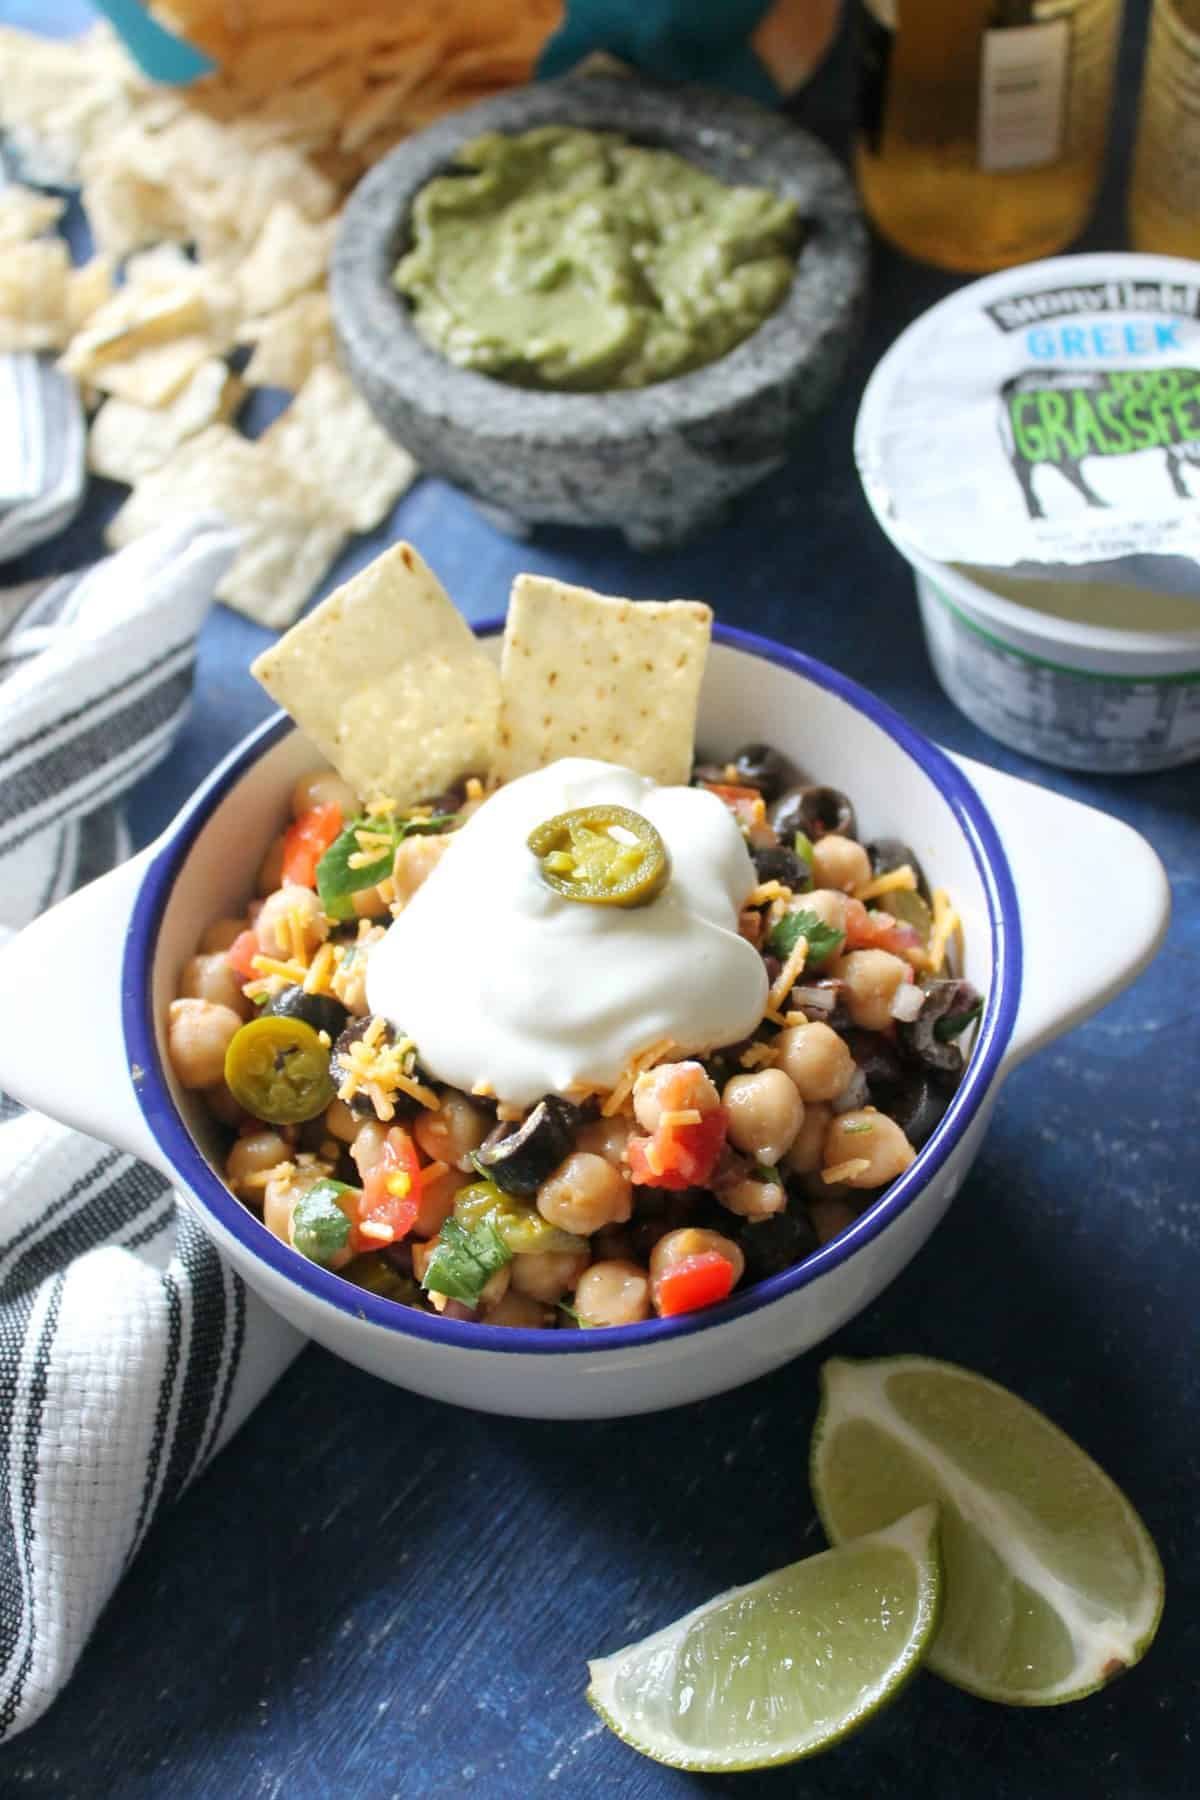 """Nacho"" Chickpea Salad. Packed with protein and fiber, and loaded with classic nacho toppings, this salad is an ideal snack for that snacky feeling that tends to creep up while game-watching."